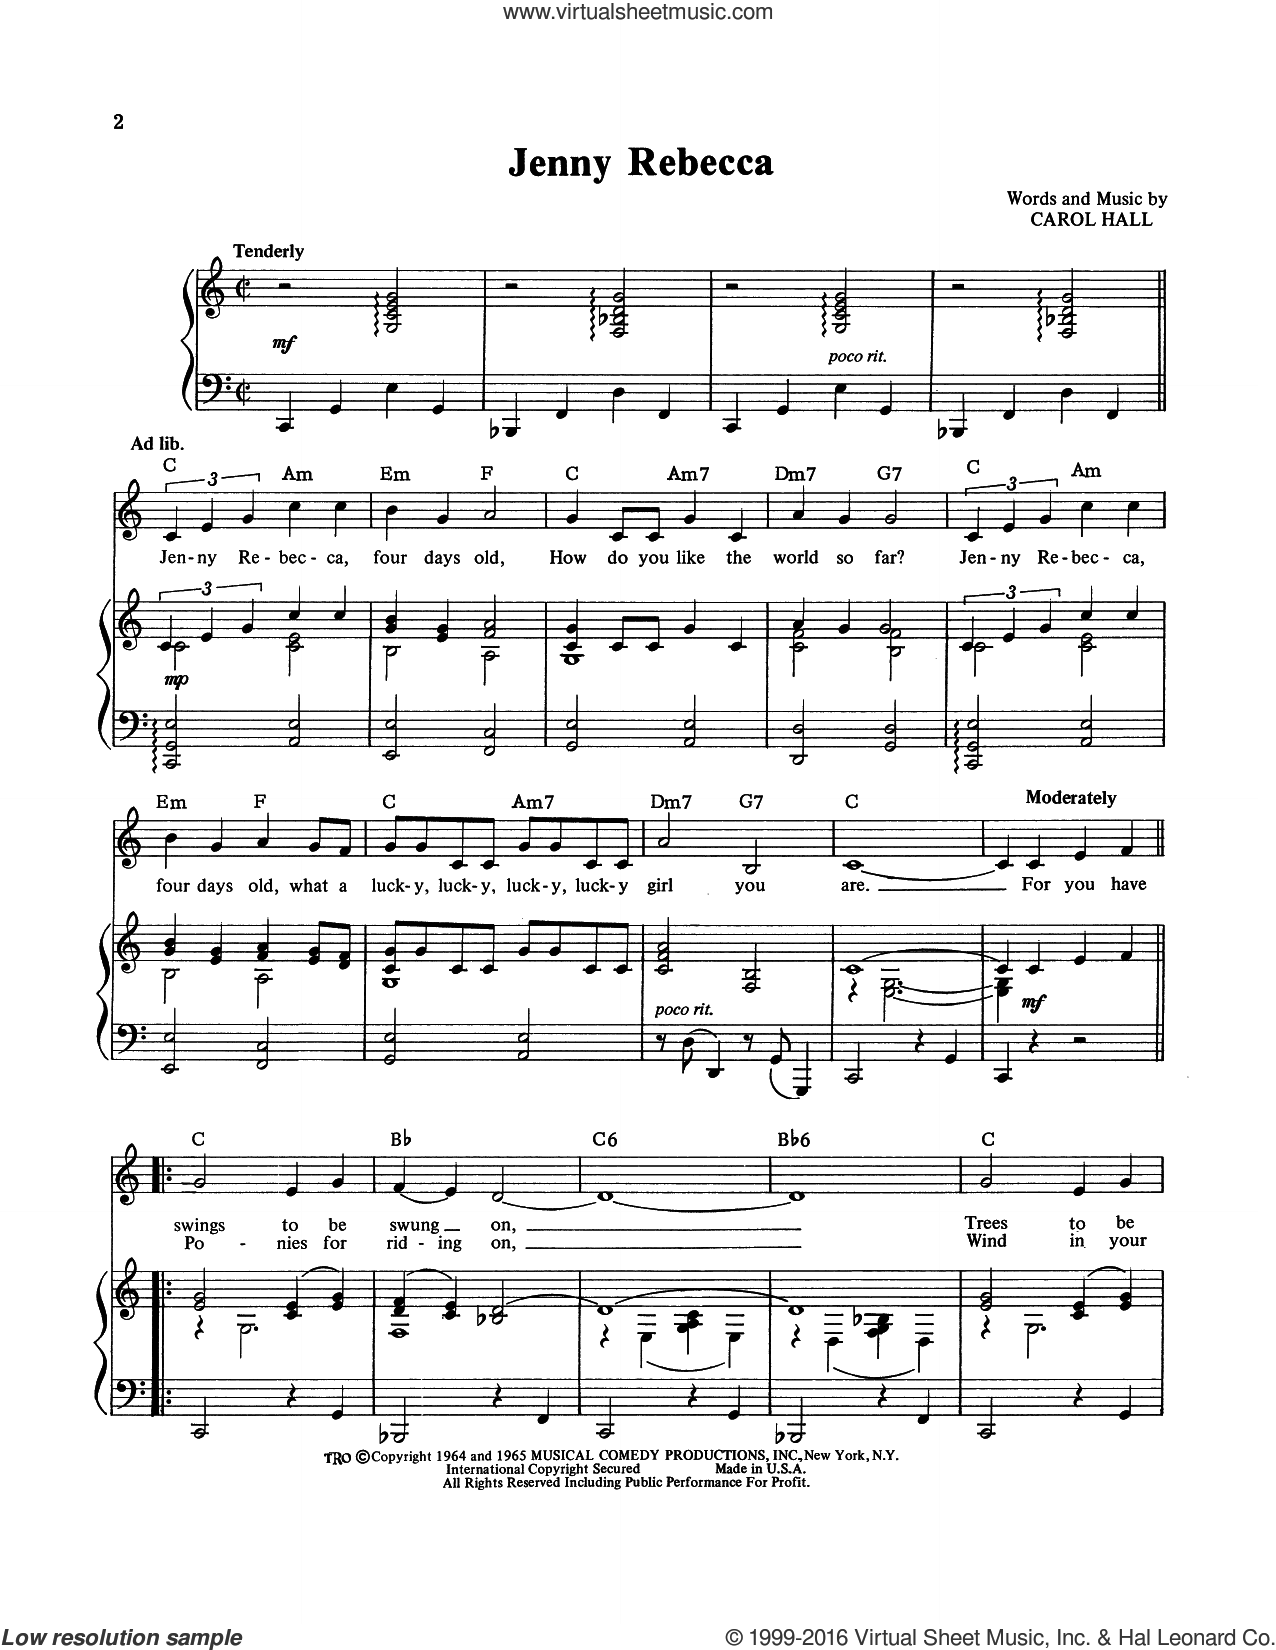 Jenny Rebecca sheet music for voice, piano or guitar by Carol Hall. Score Image Preview.